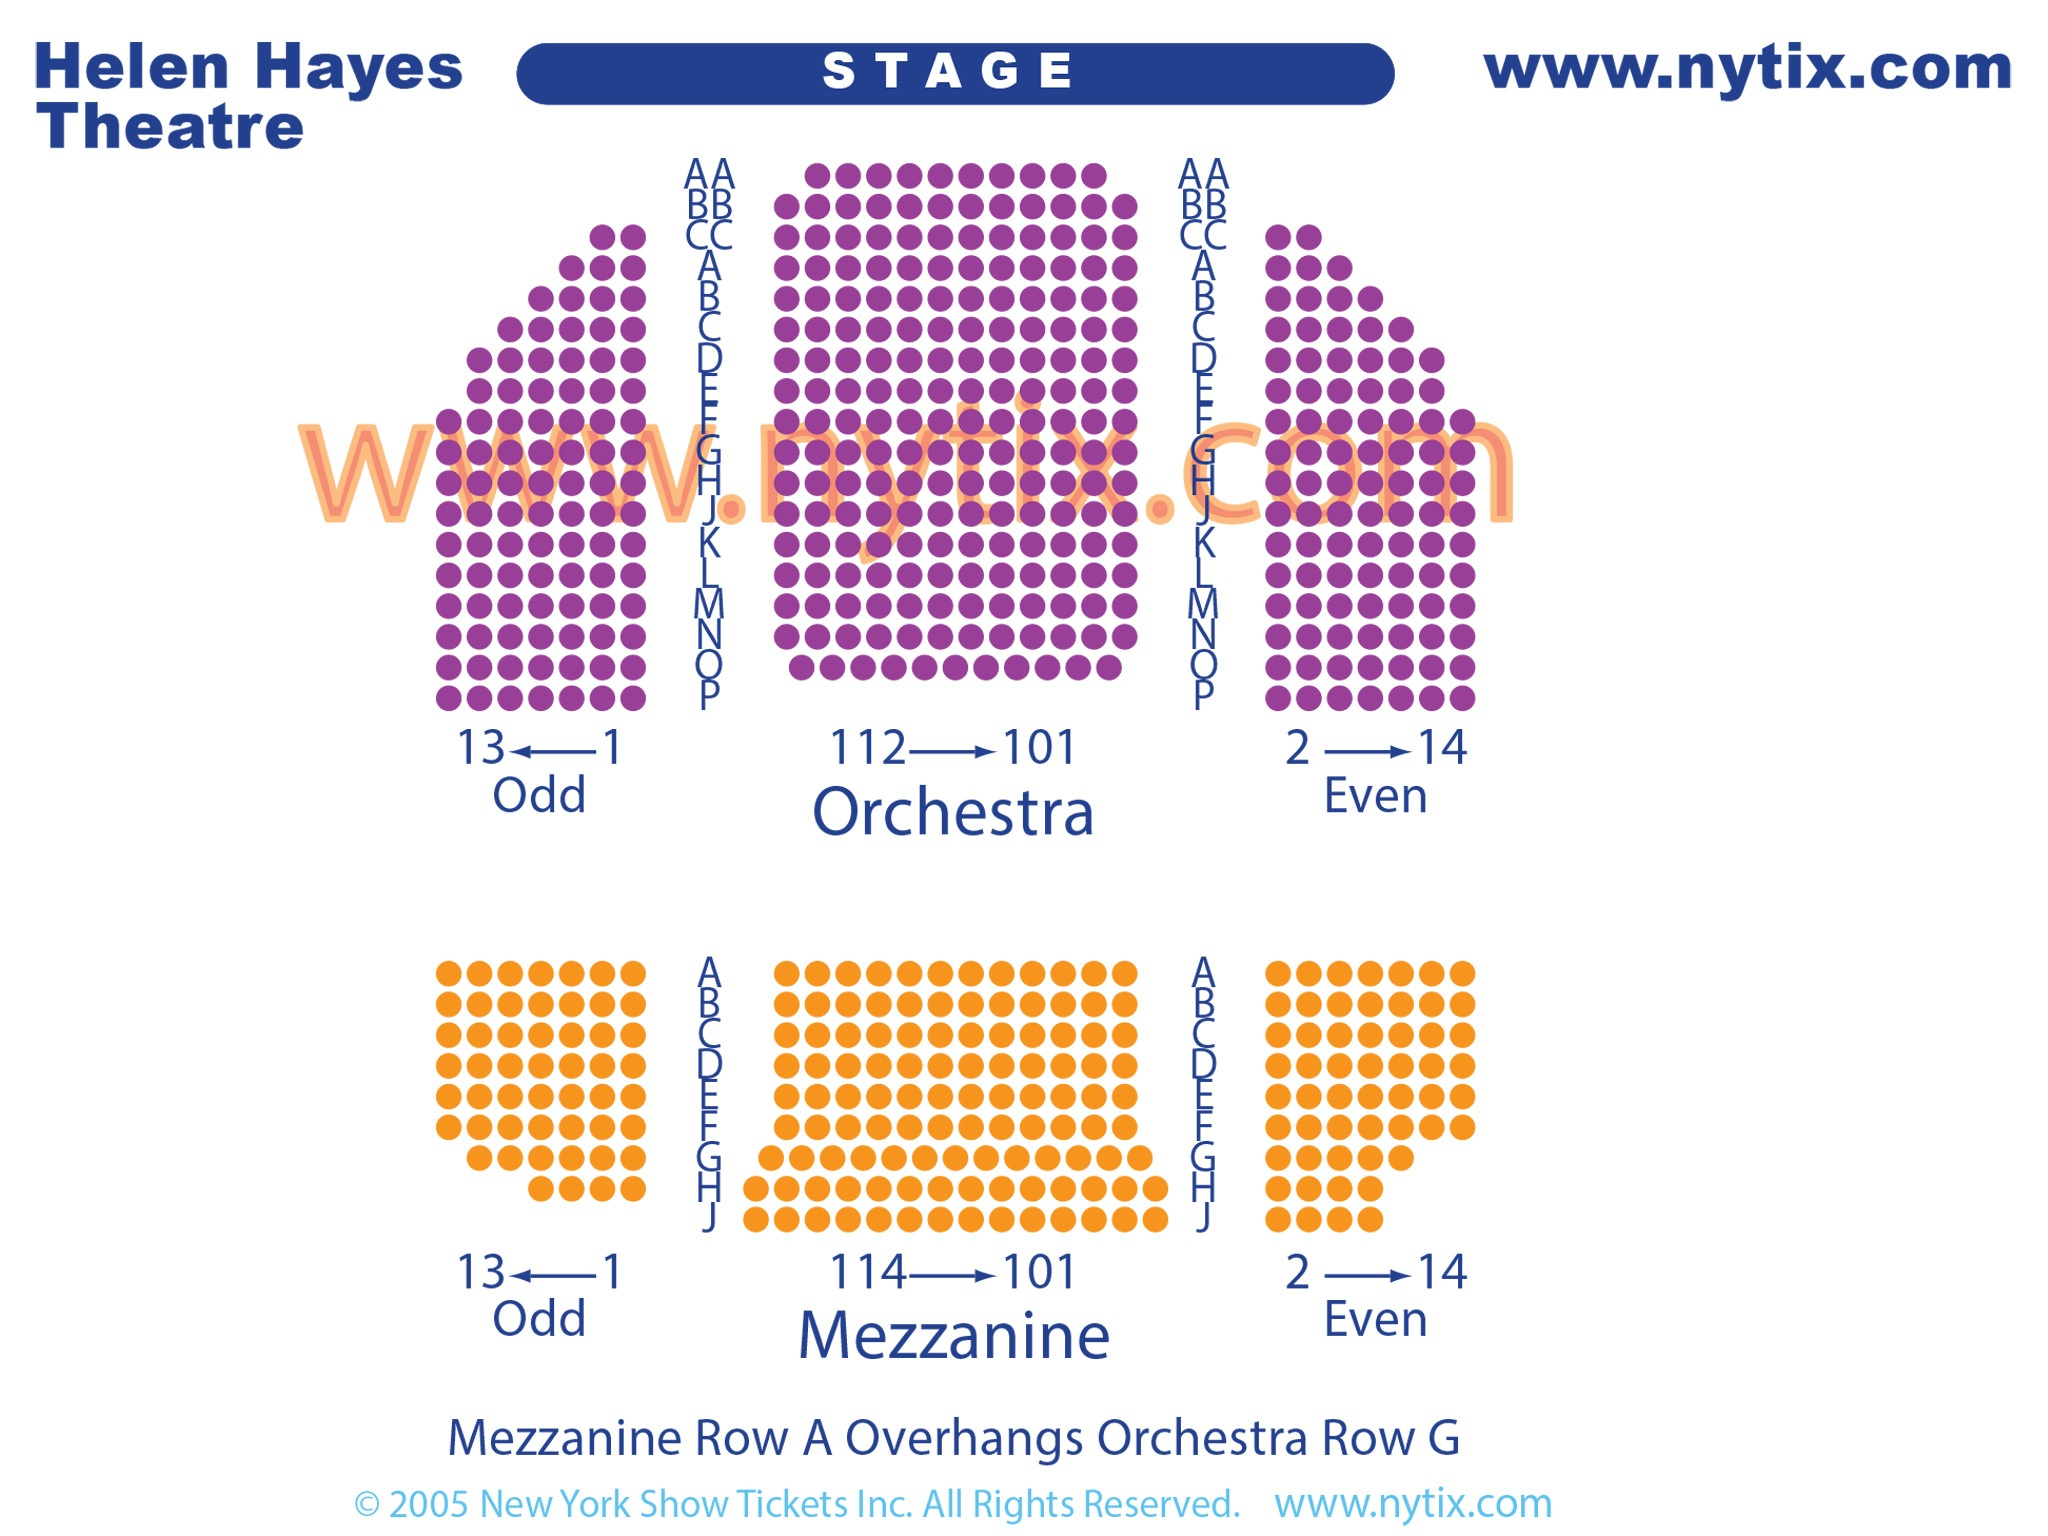 Helen Hayes Broadway Seating Chart